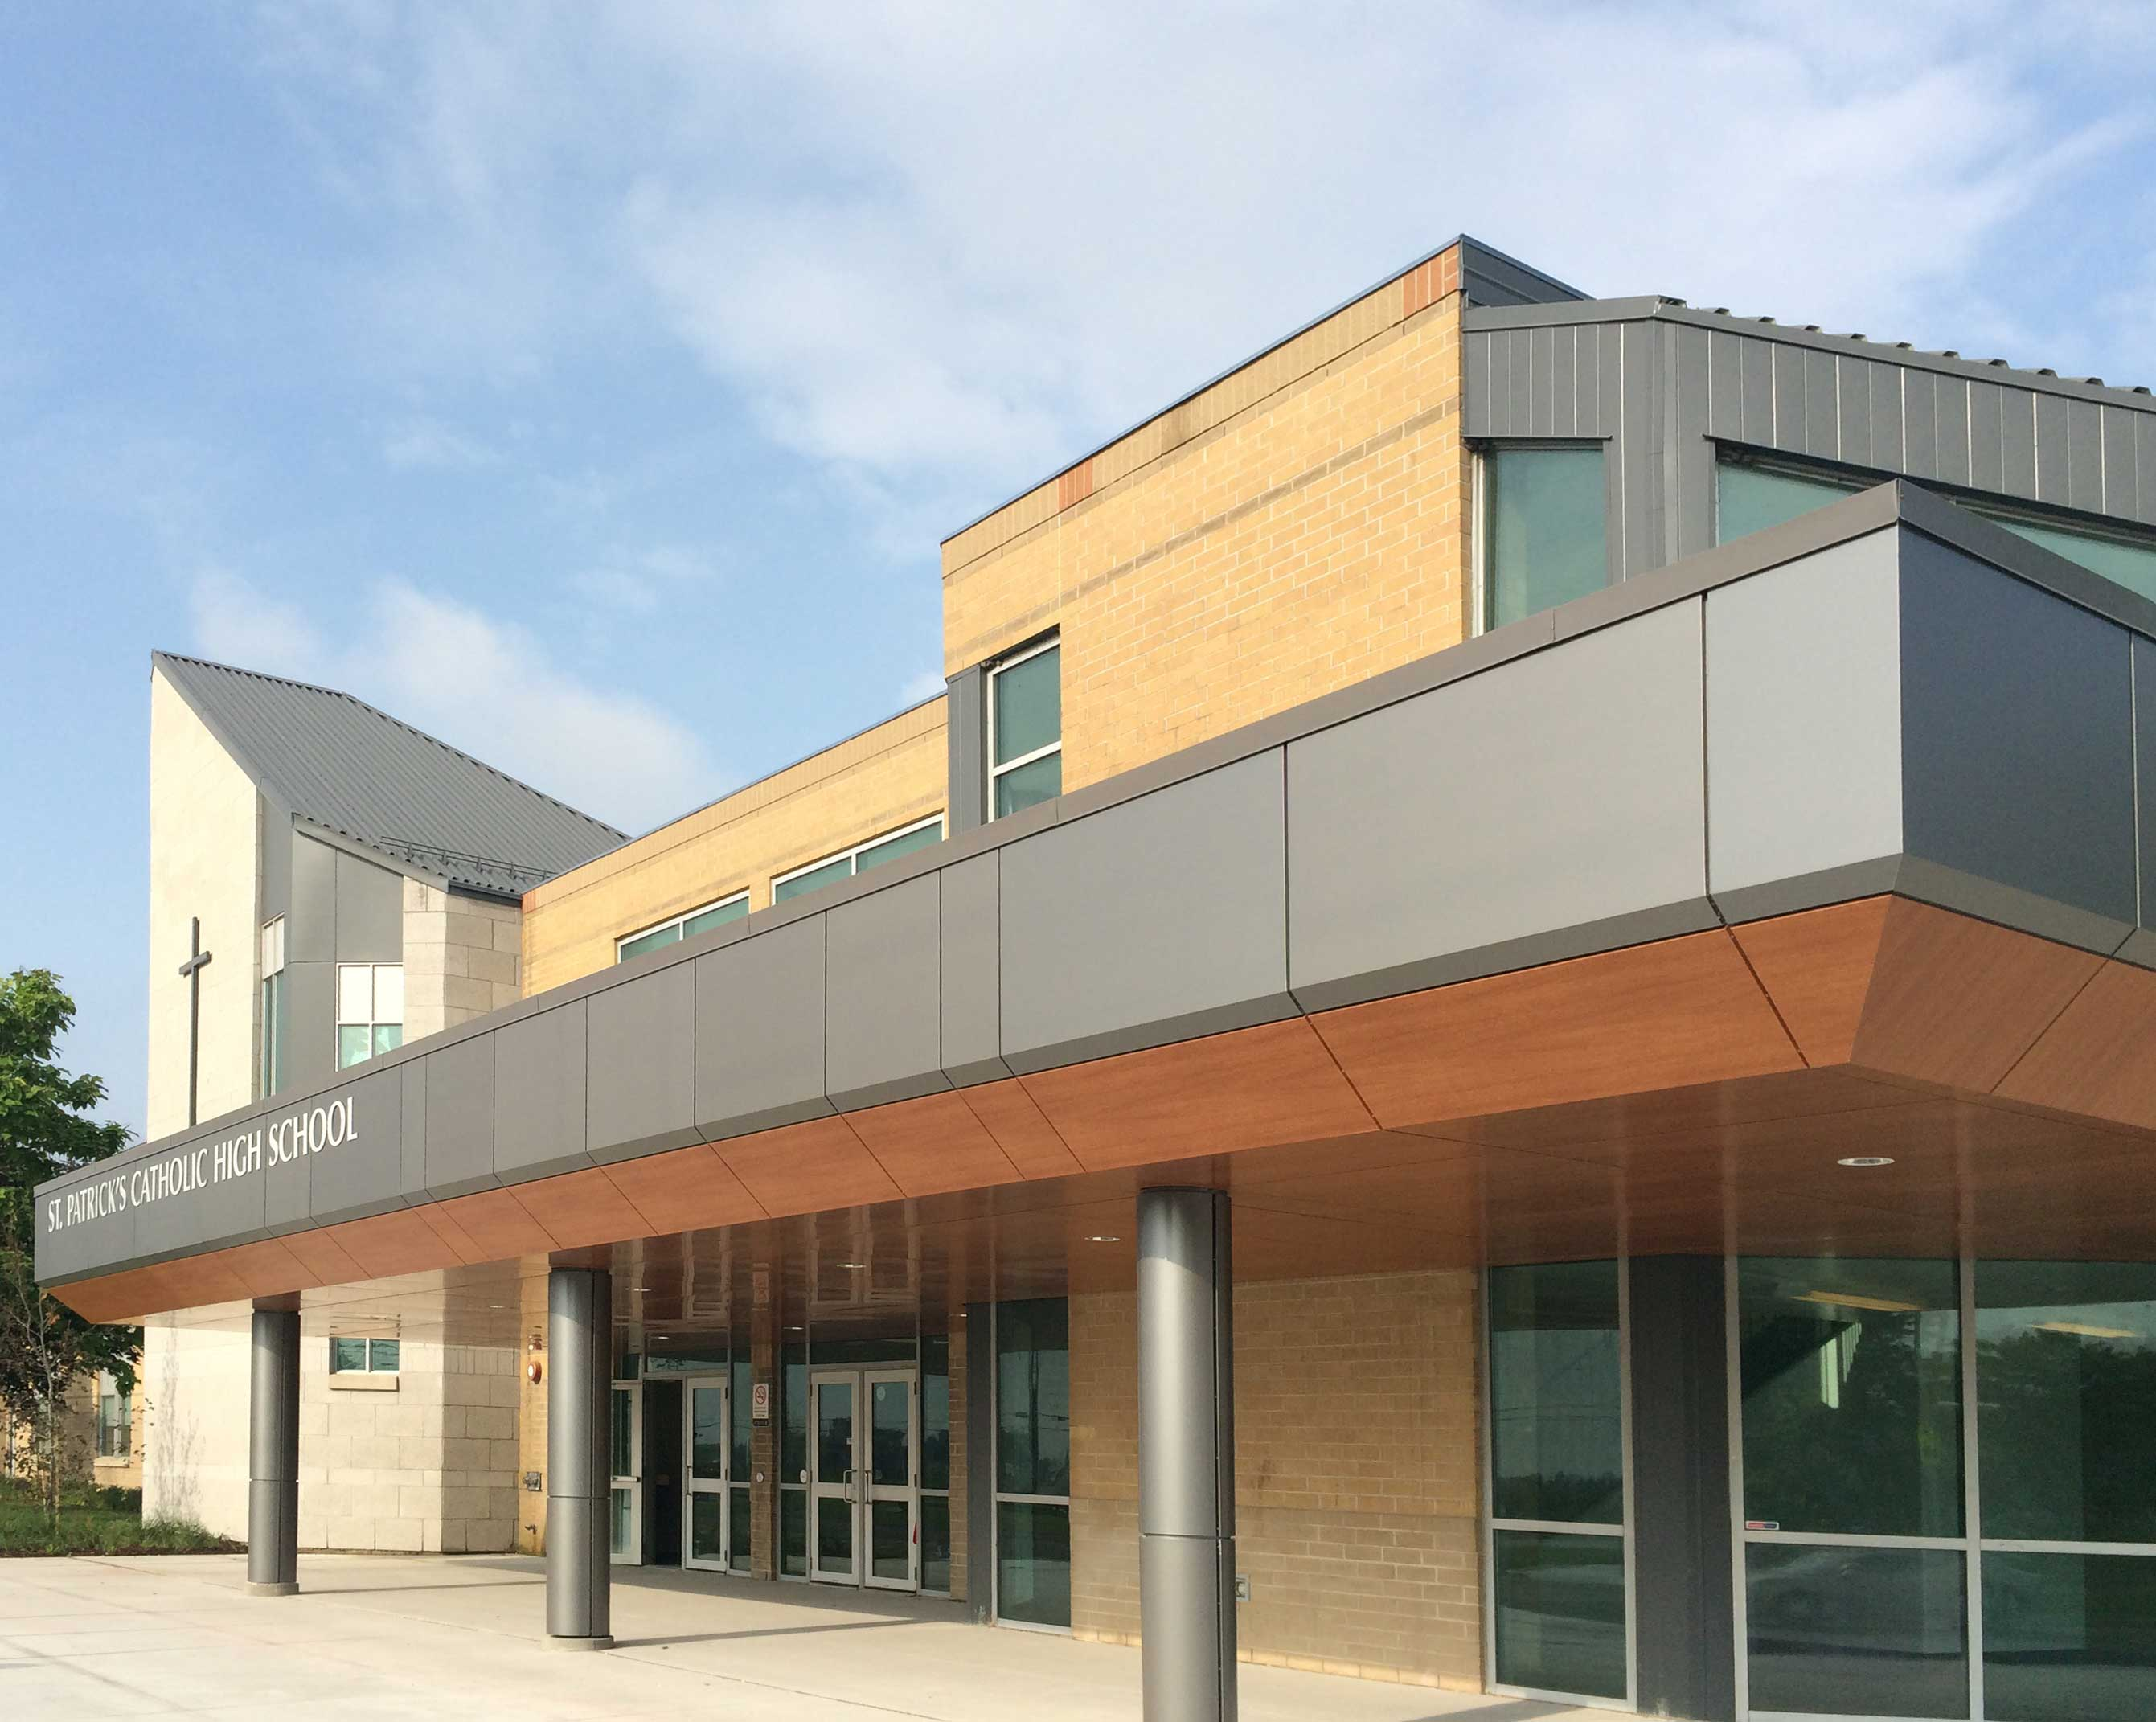 North Entrance View of Renovated St Patrick's Catholic High School